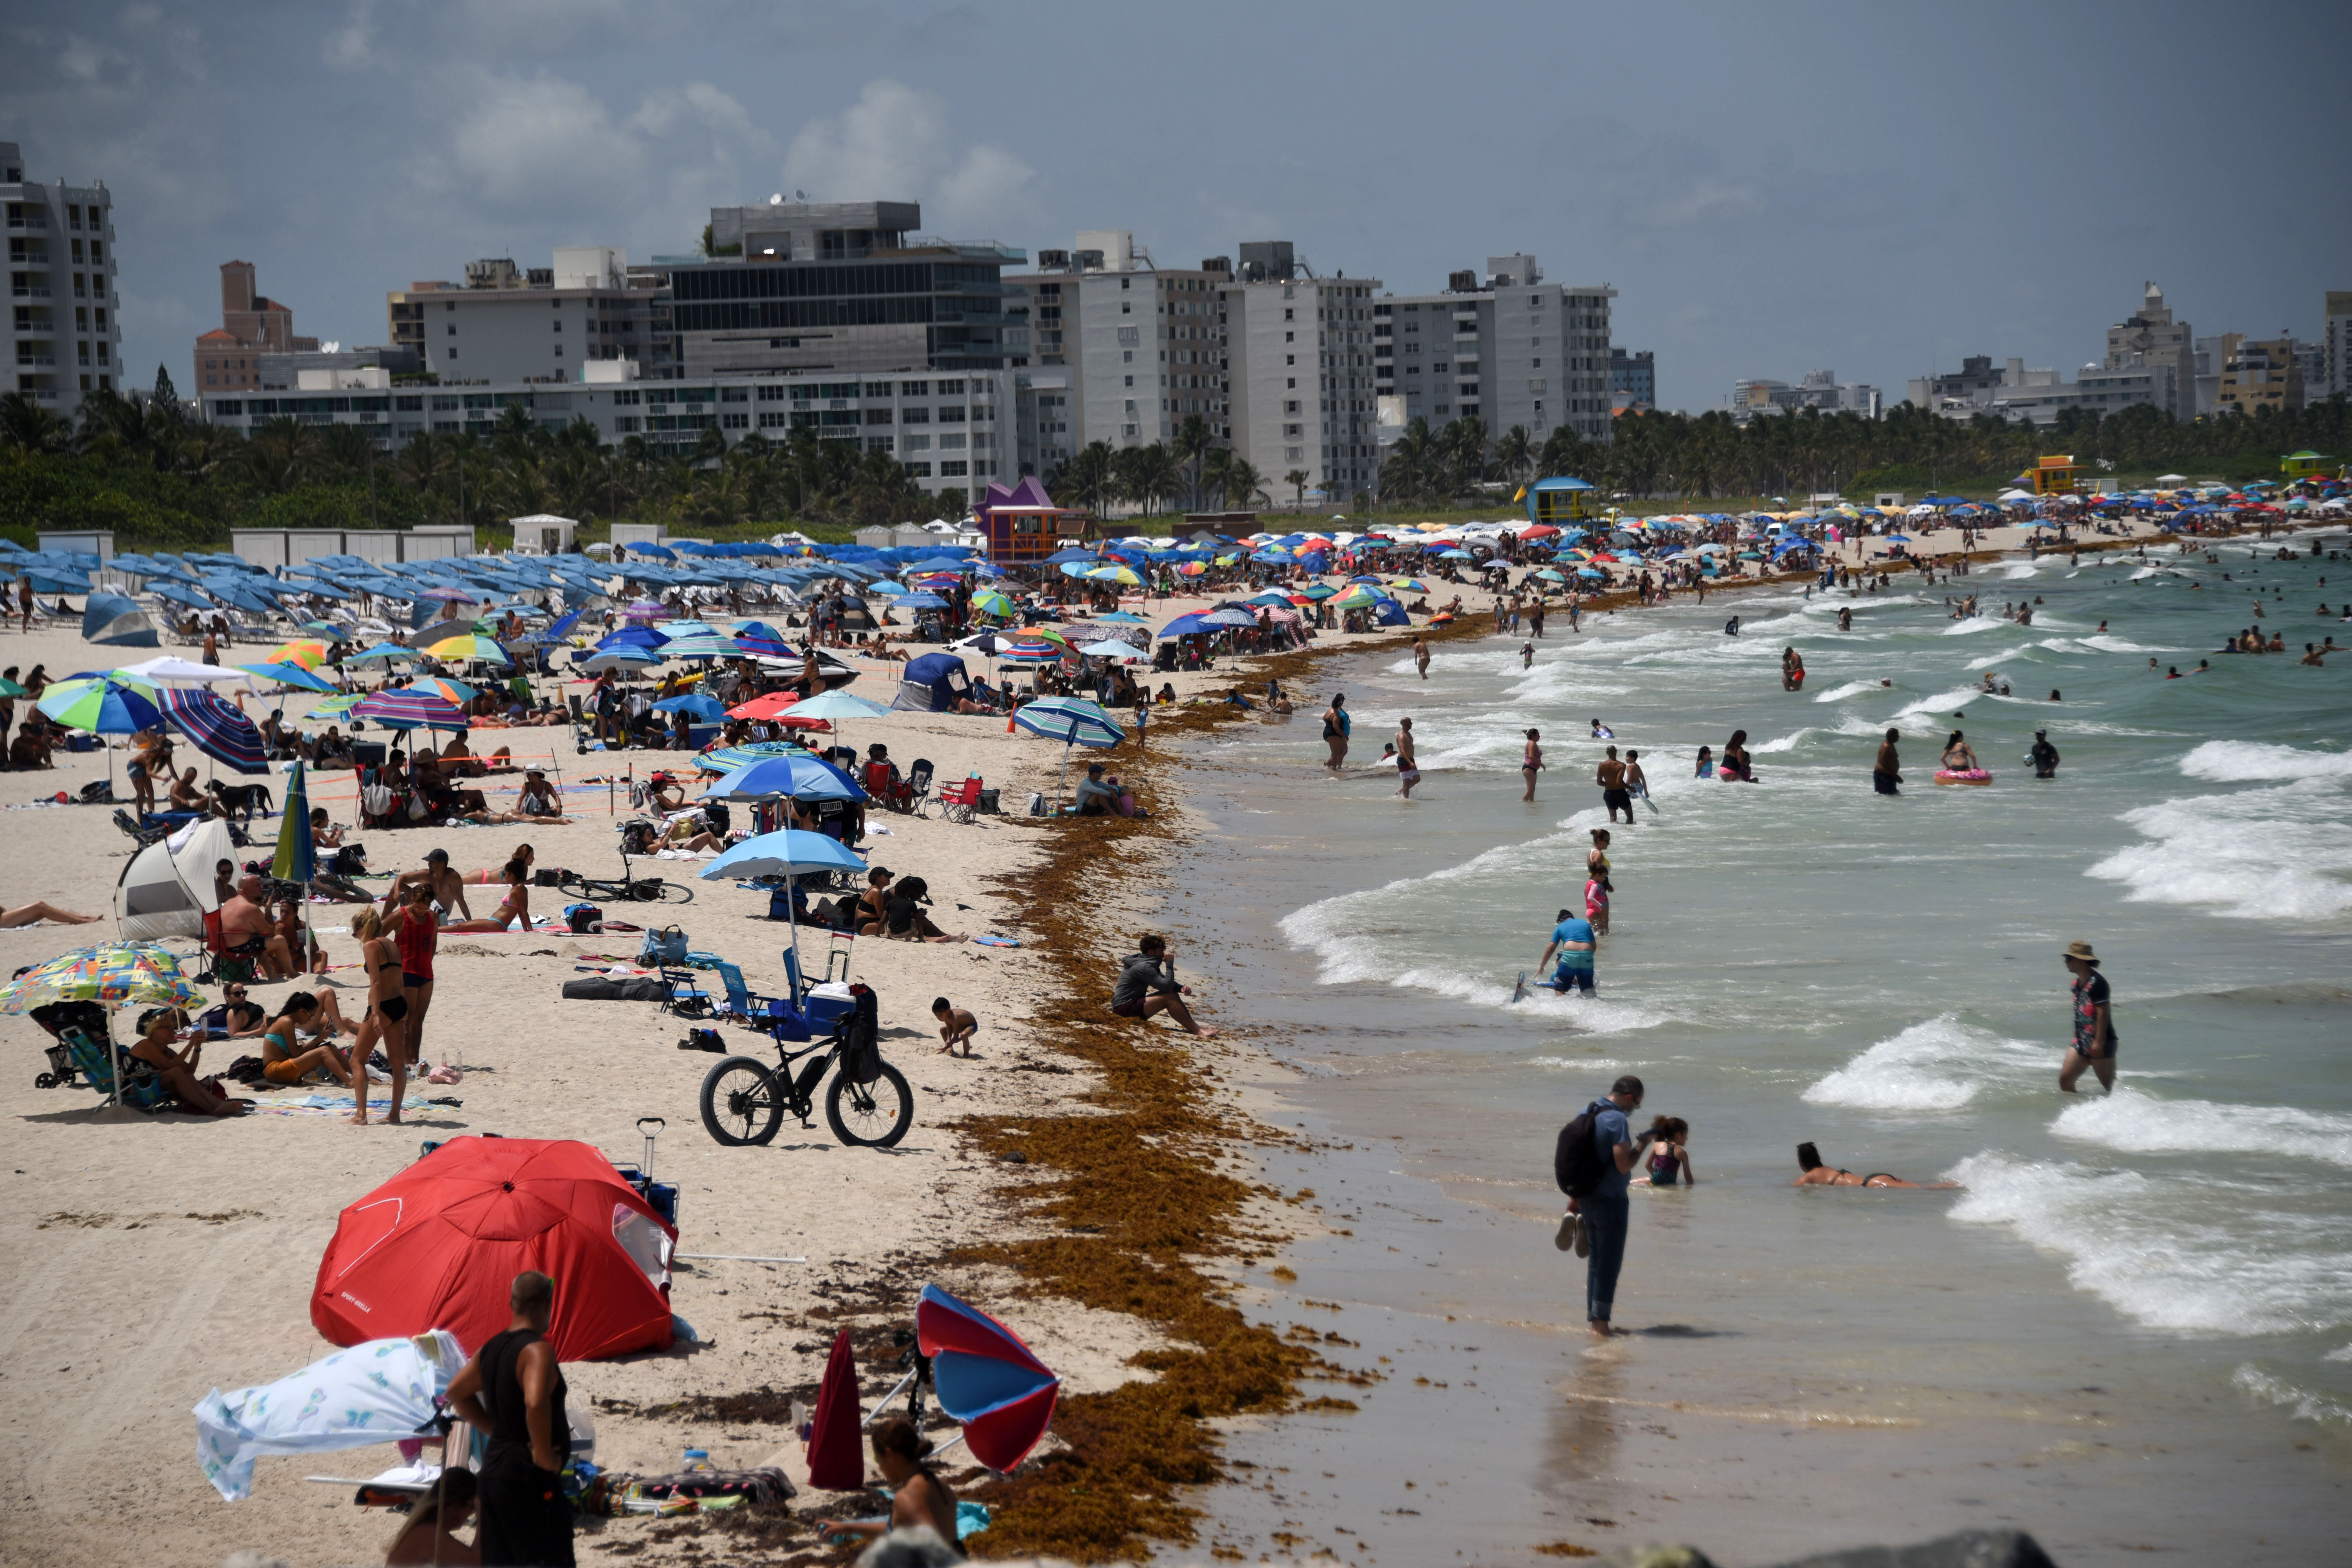 People visit South Beach in Florida on June 27.